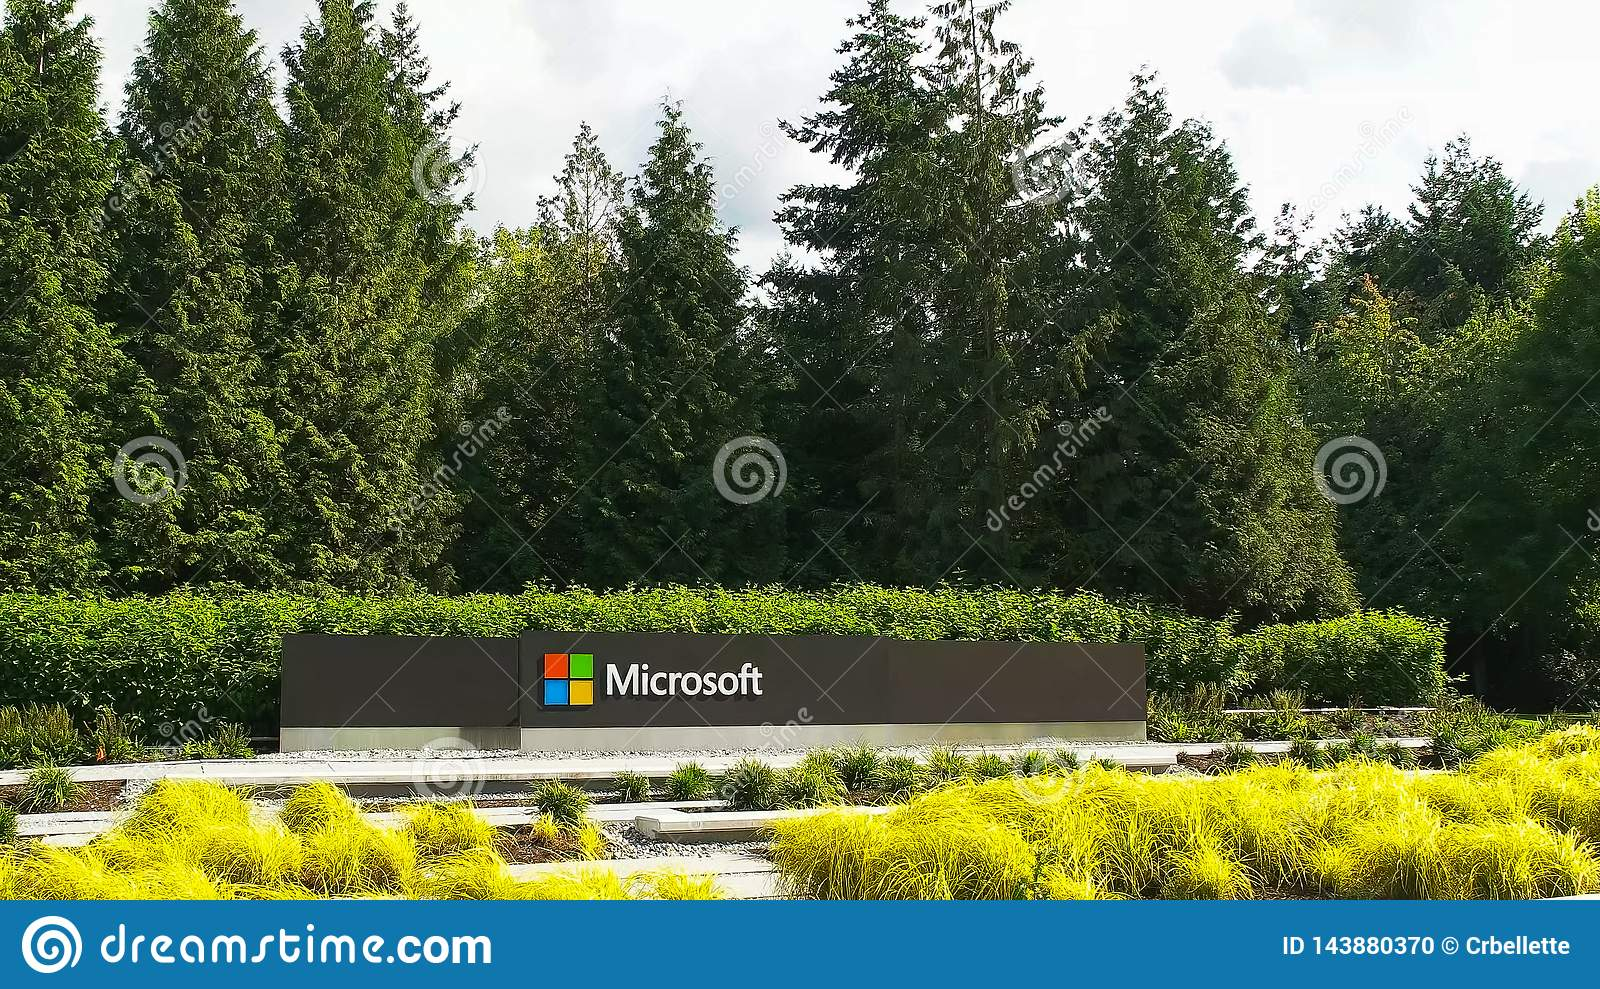 REDMOND WASHINGTON, USA SEPTEMBER 3, 2015: bred sikt av den Microsoft Windows logoen och namn på seattle